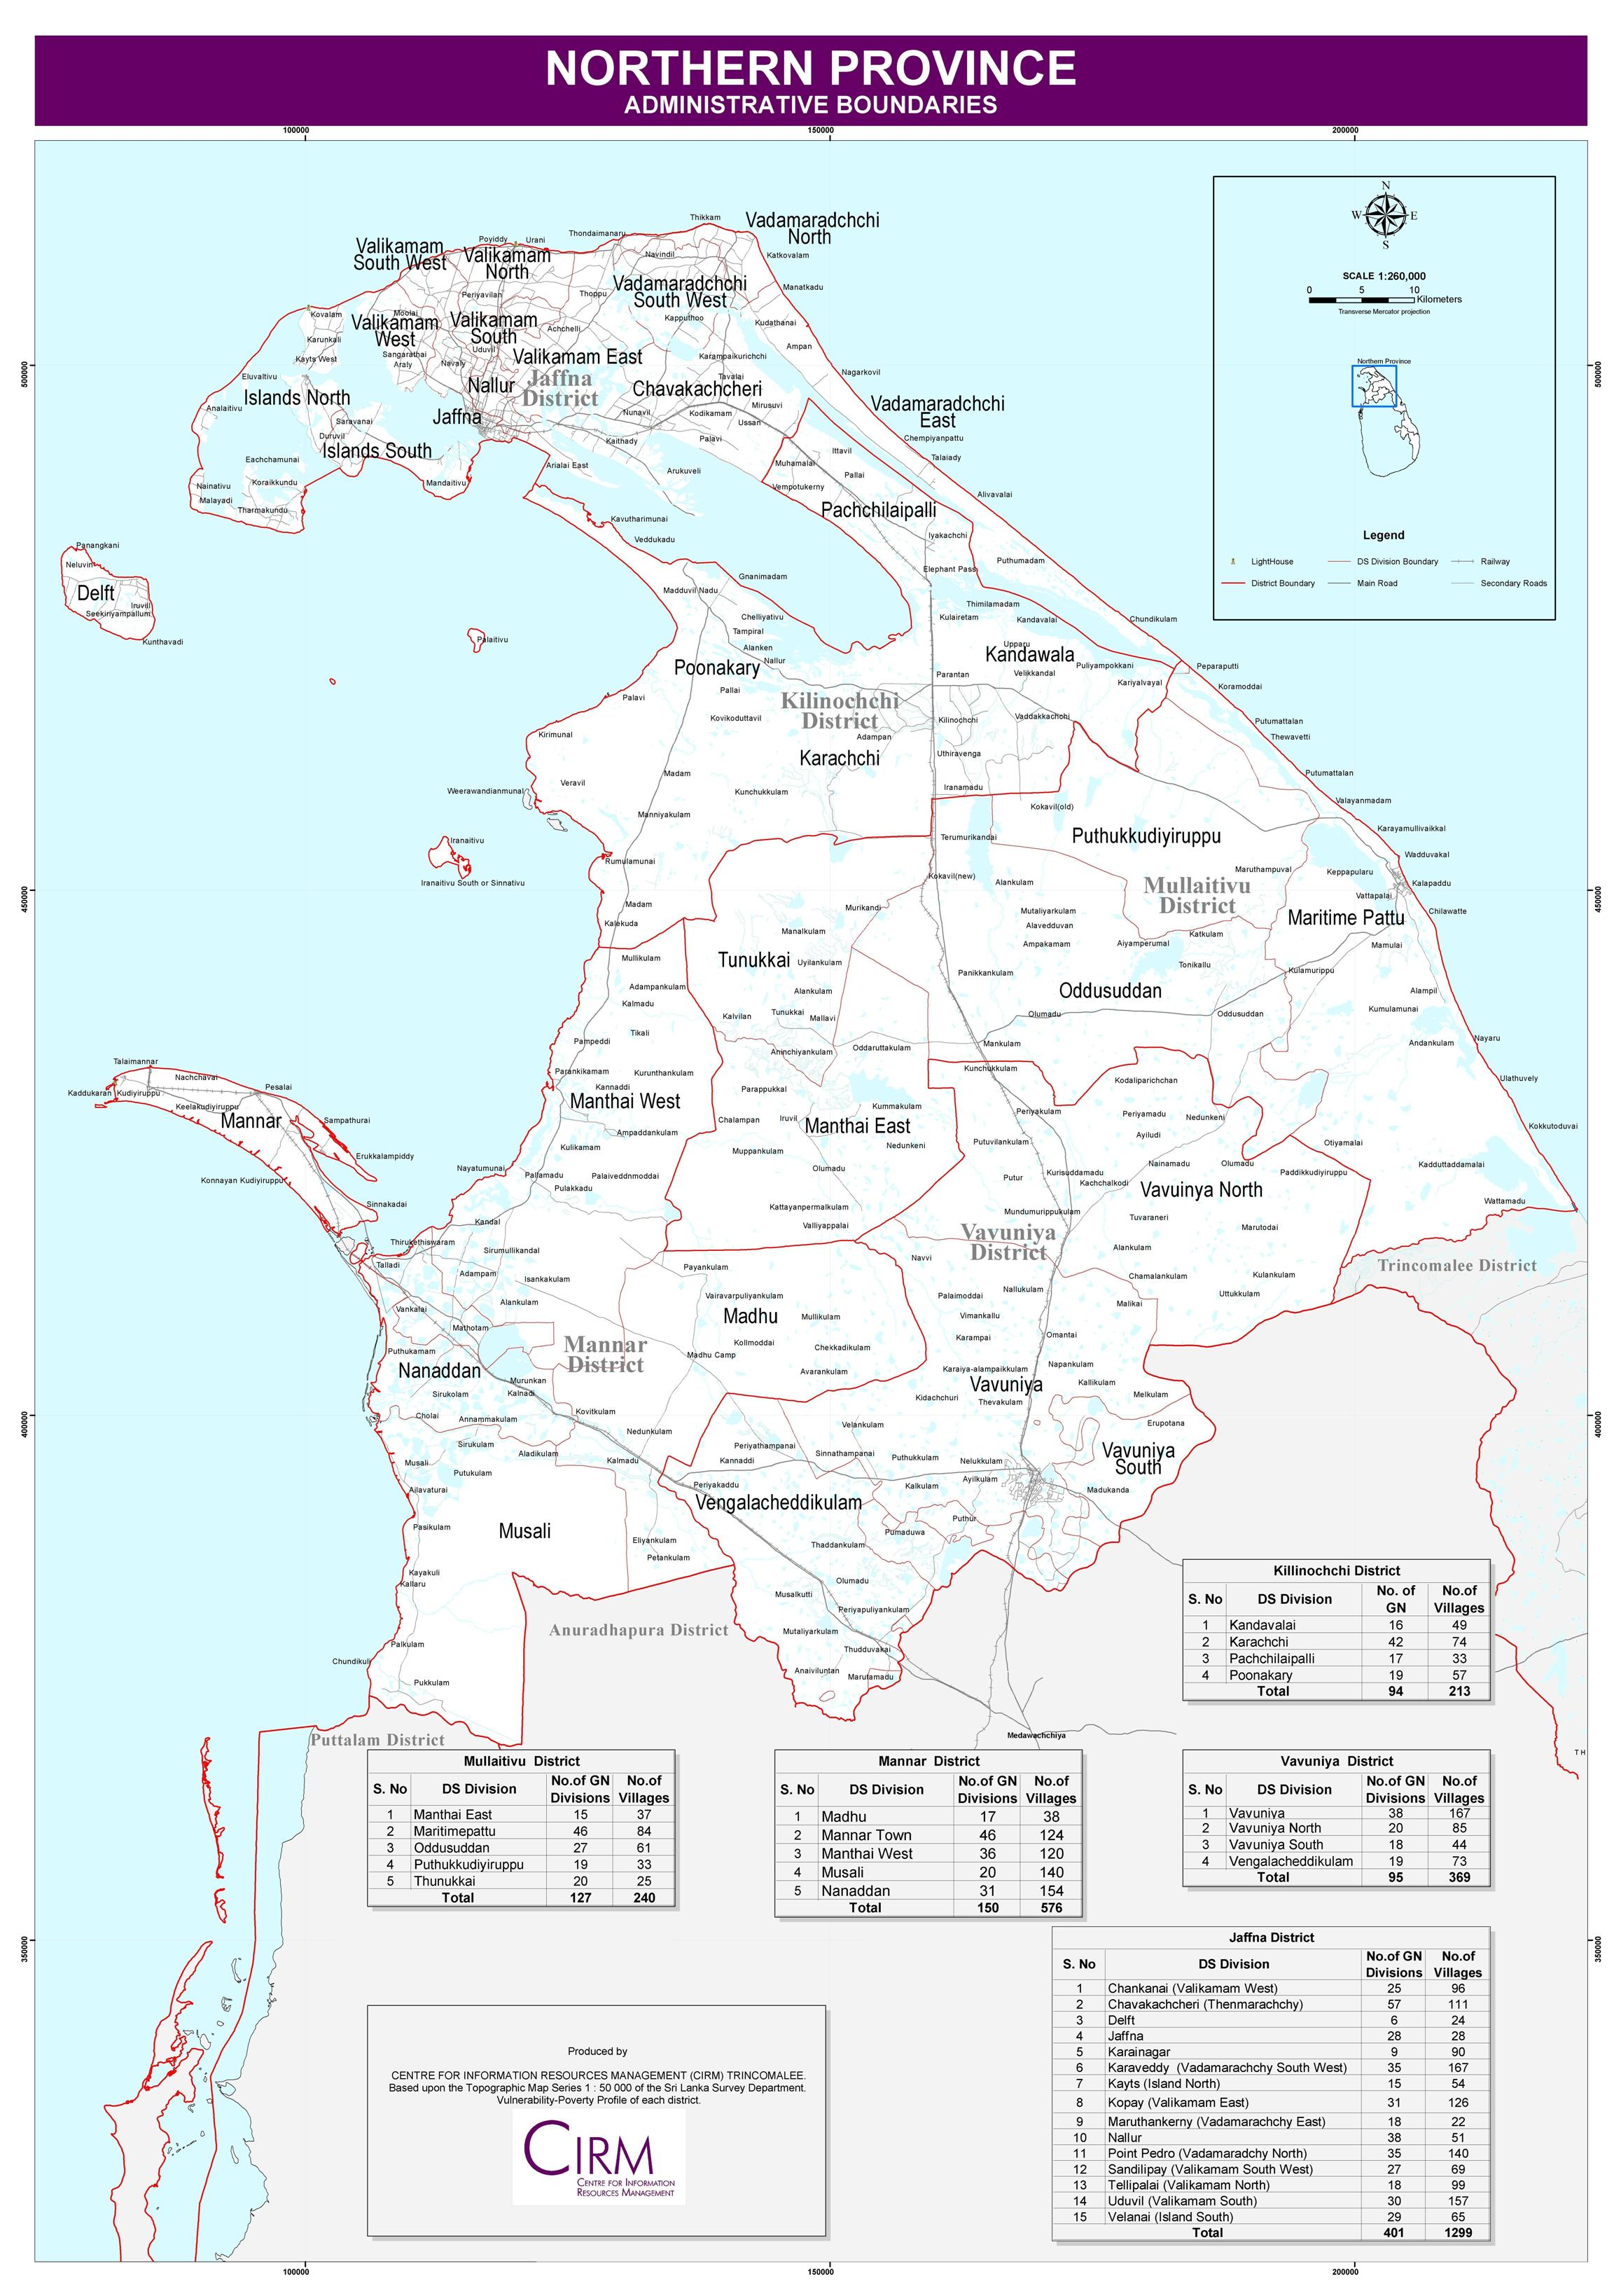 Maps Of Province  Districts And Ds Divisions  U2013 Northern Provincial Council  Sri Lanka